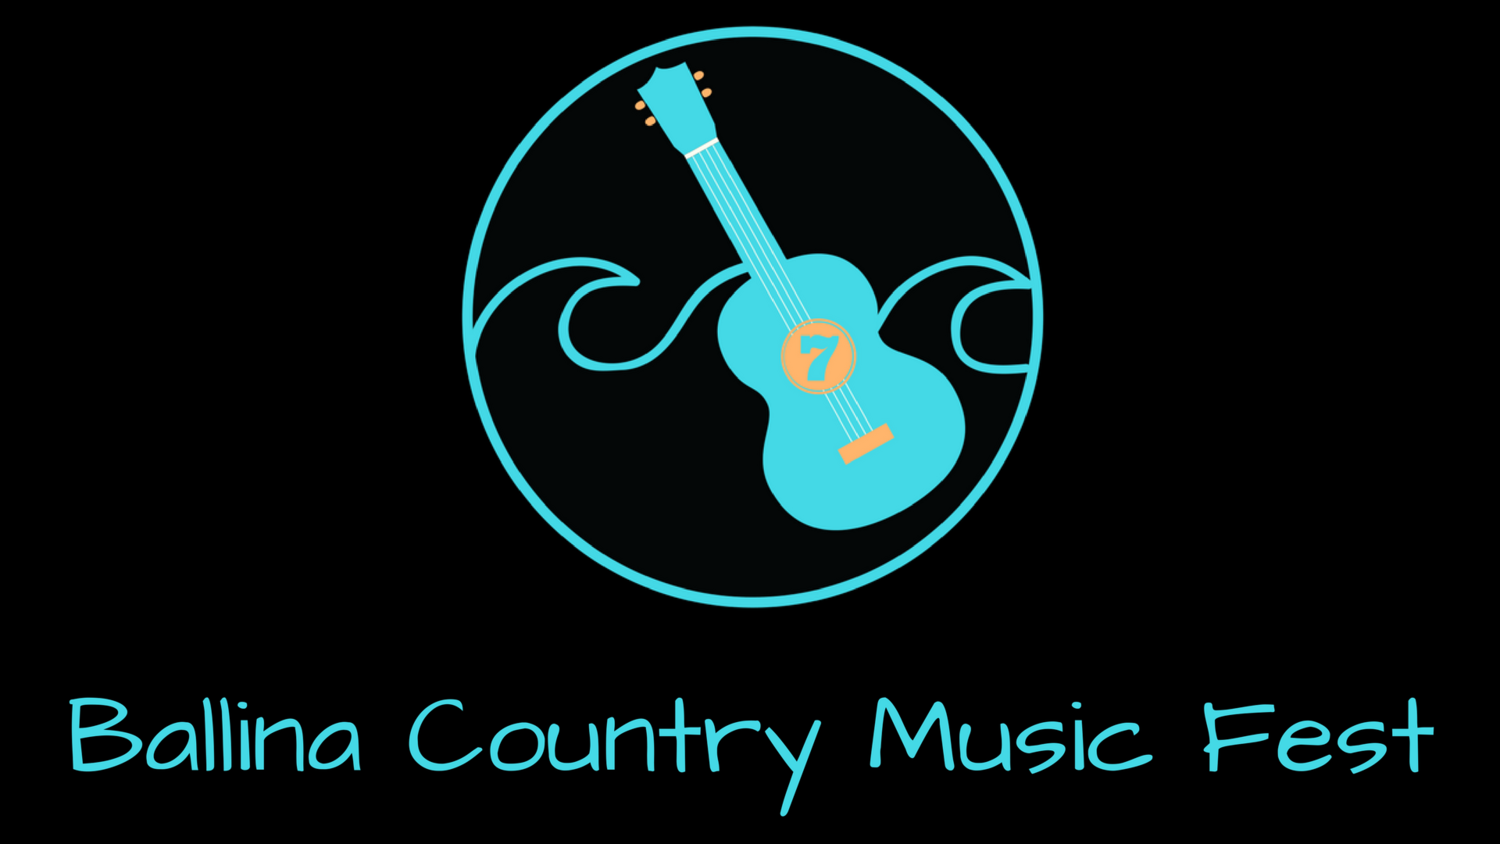 2019 Ballina Country Music Fest